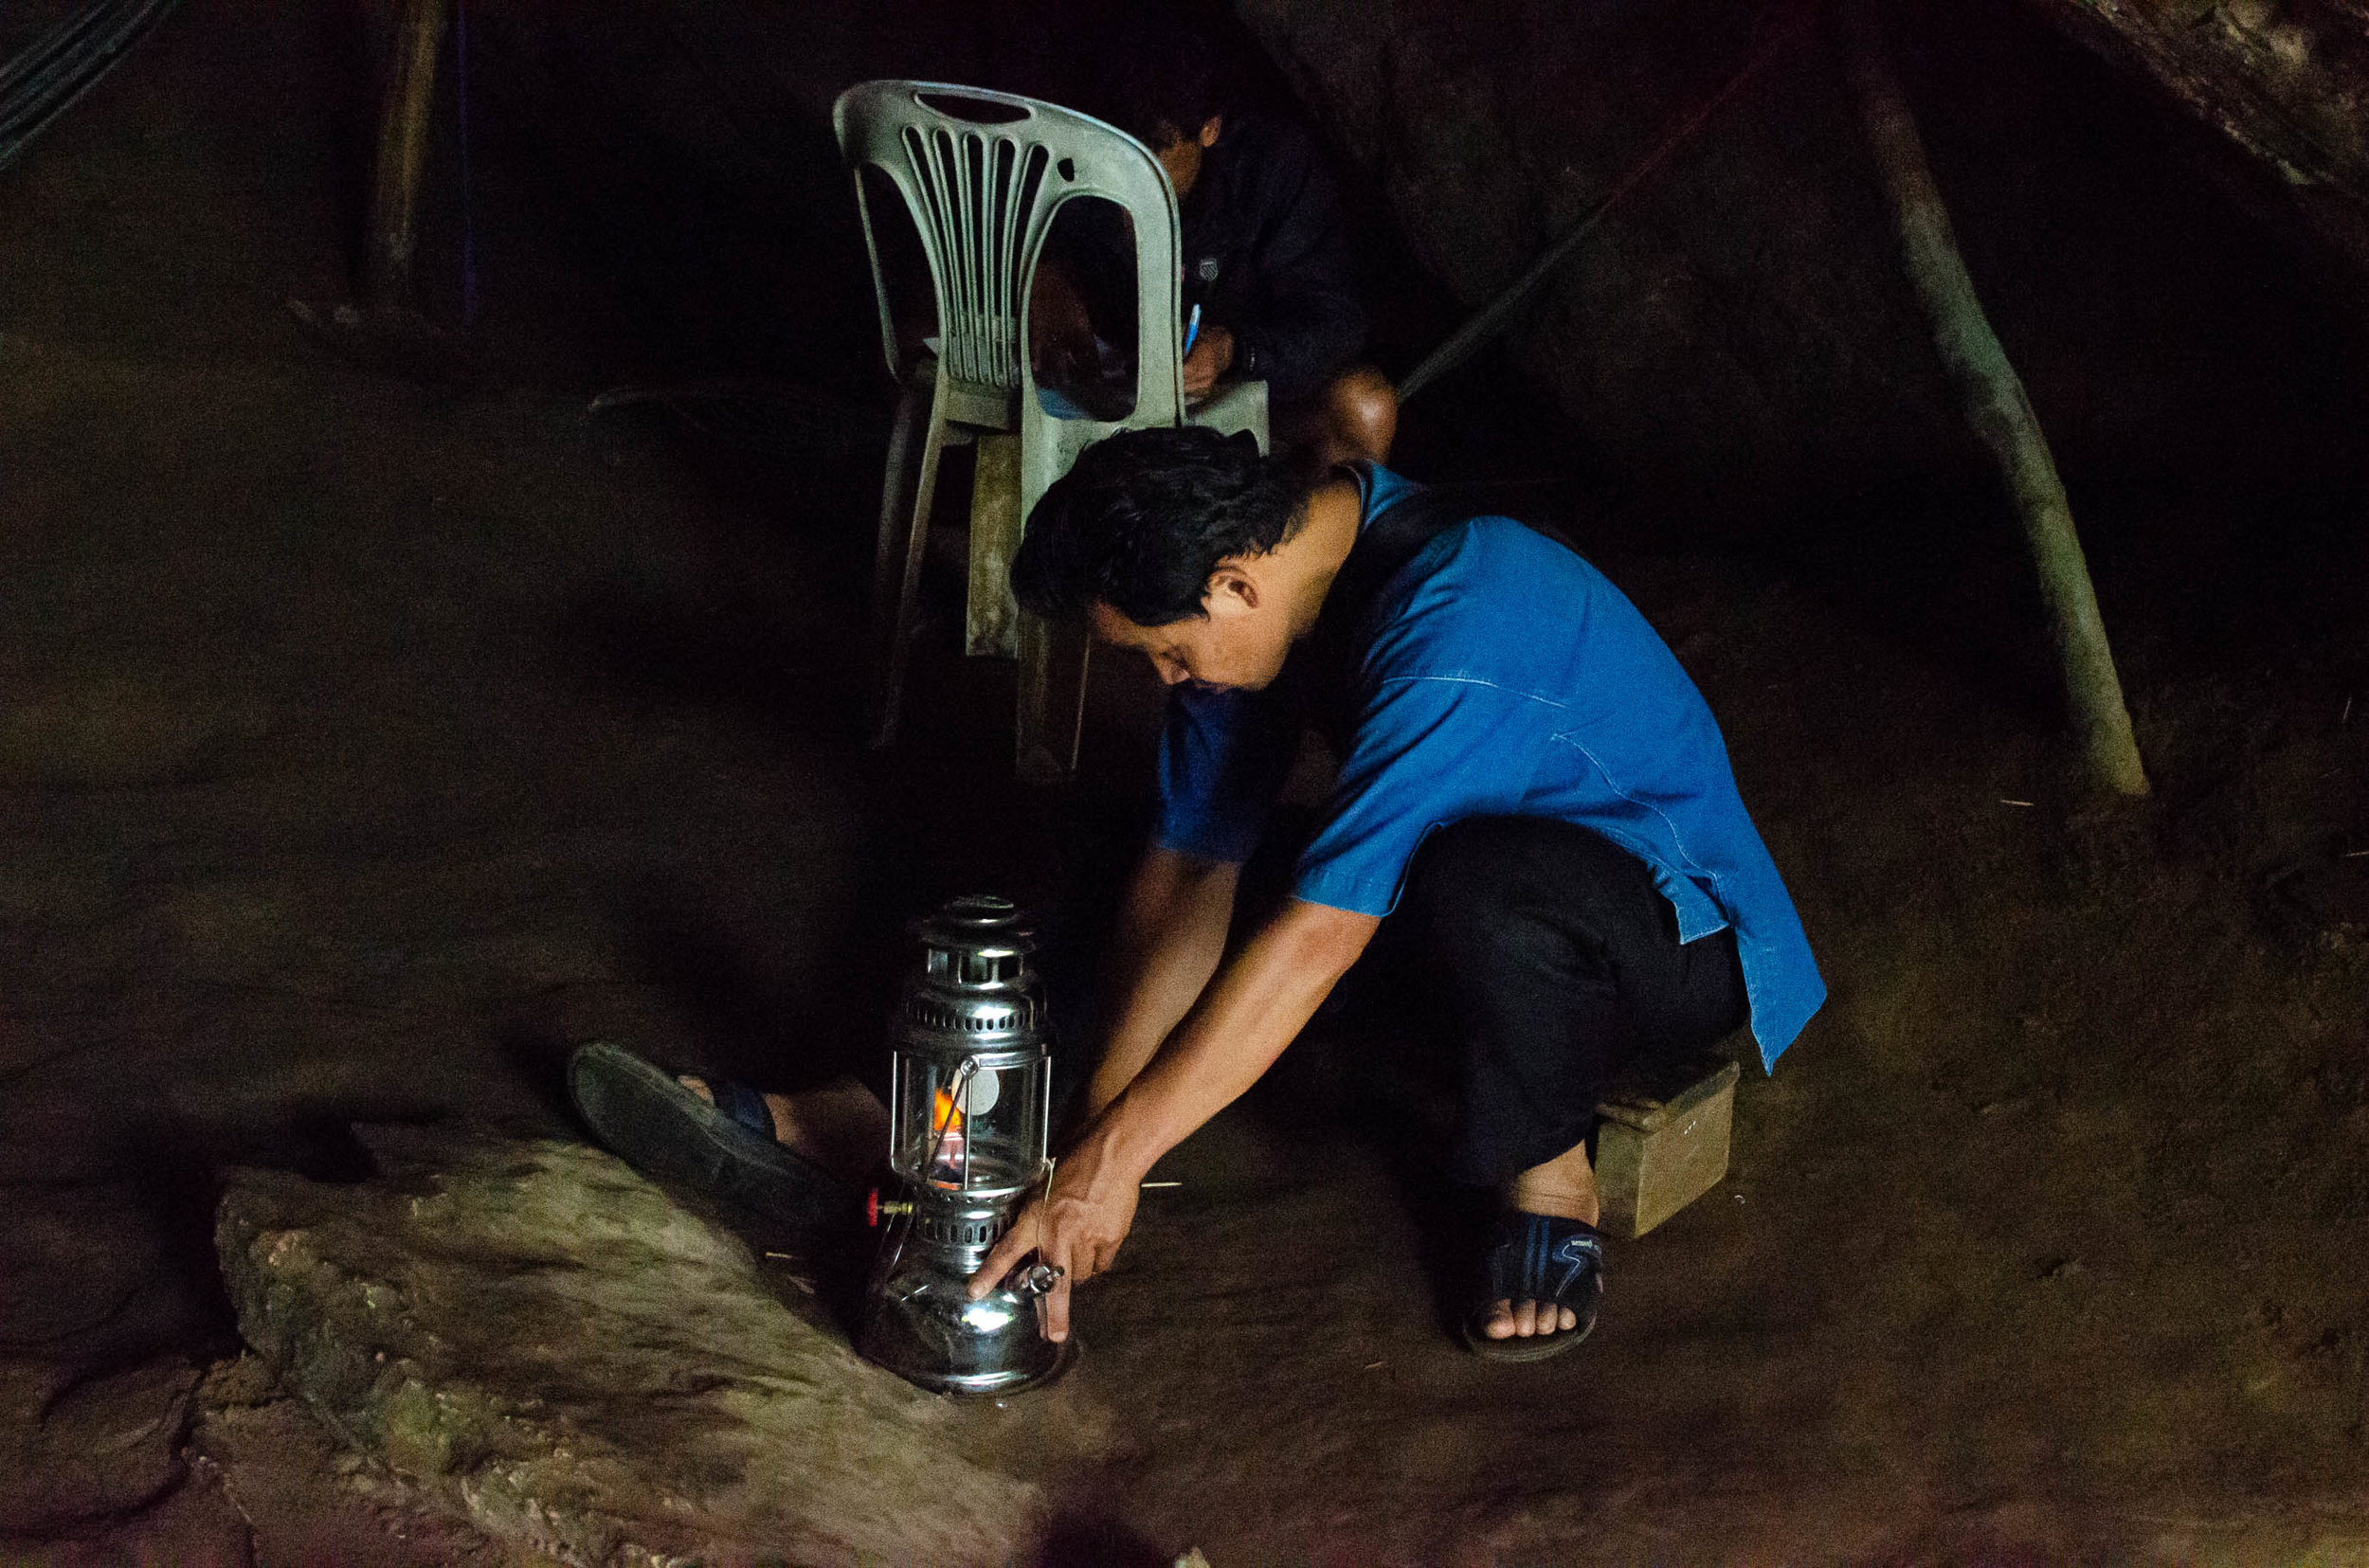 One of the Tham Lod Cave guides lighting a lantern